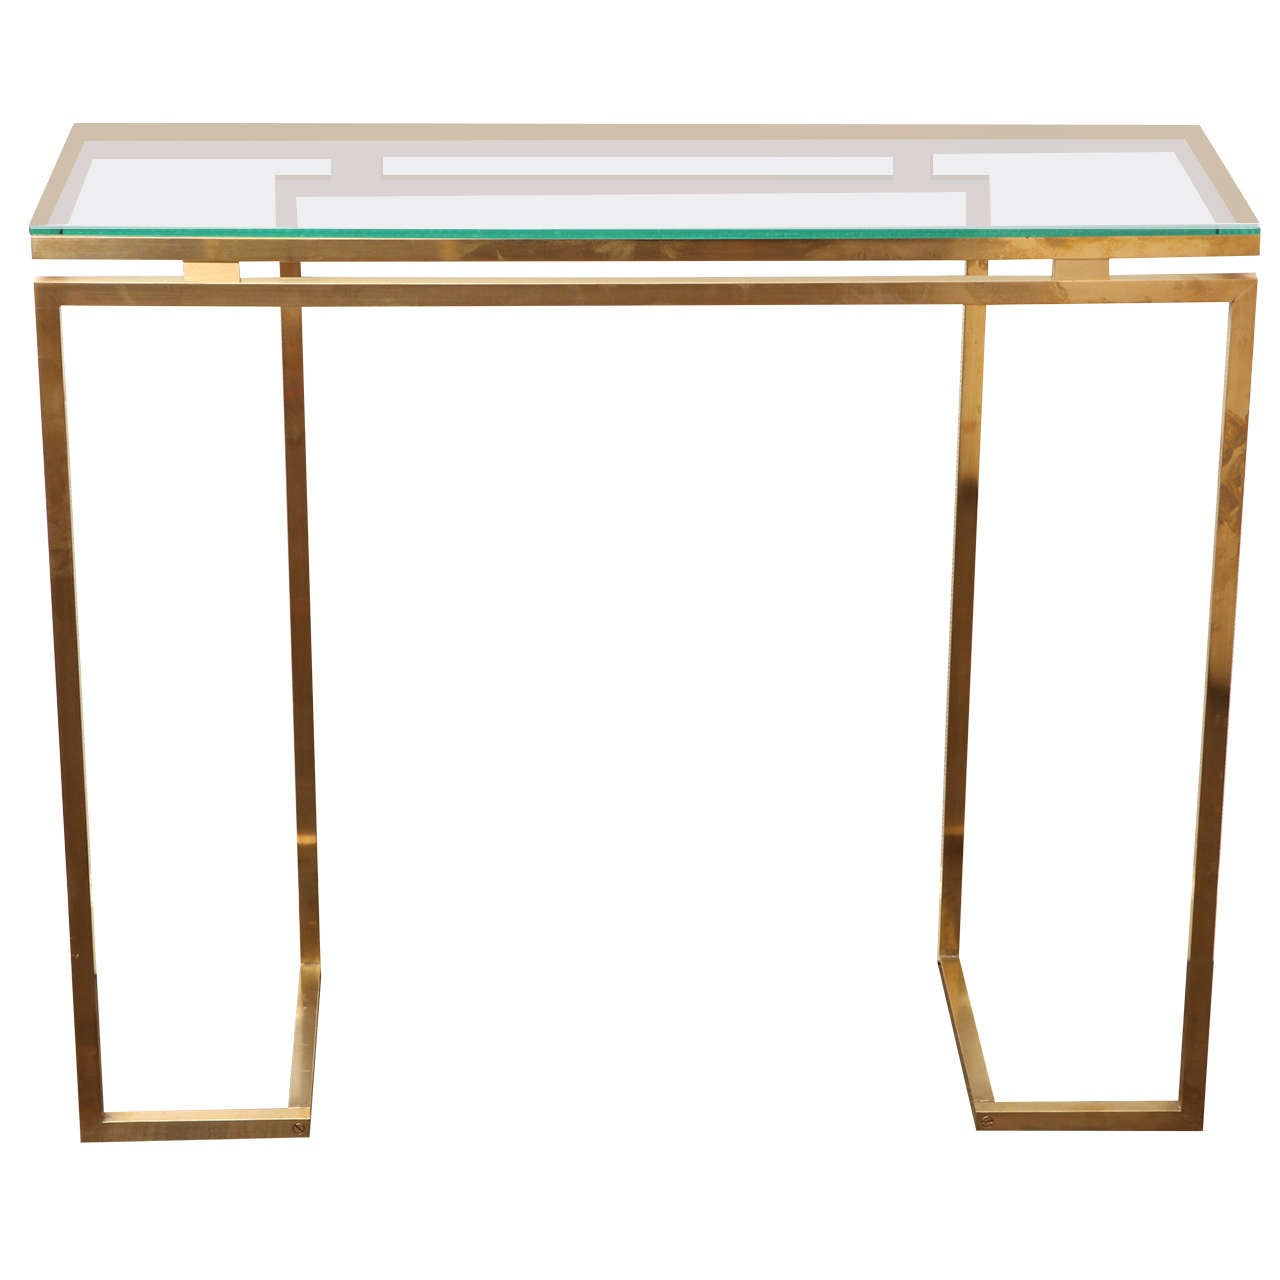 A Geometric Brass And Glass Topped Console Table France C